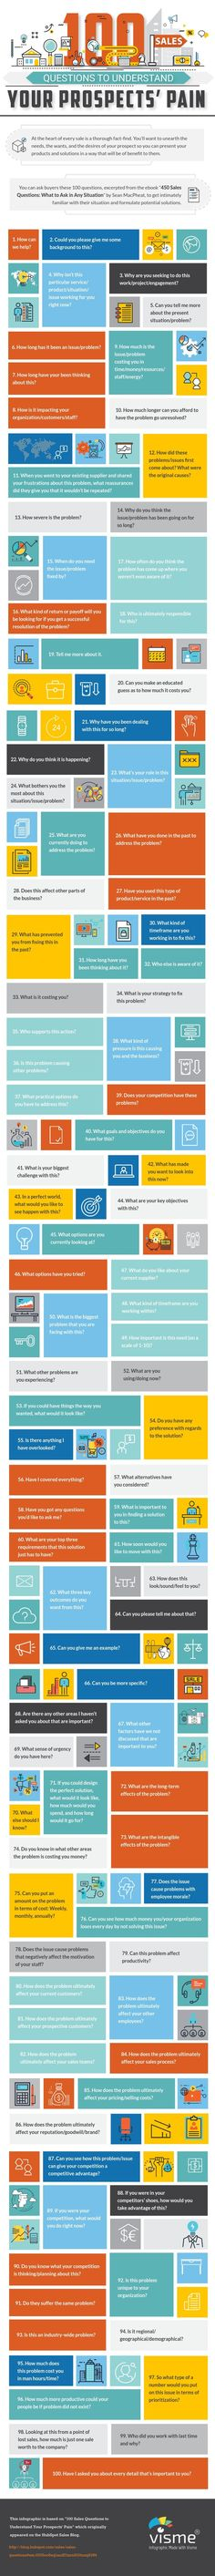 100 Sales Questions to Truly Understand Your Prospects' Pain [Infographic]